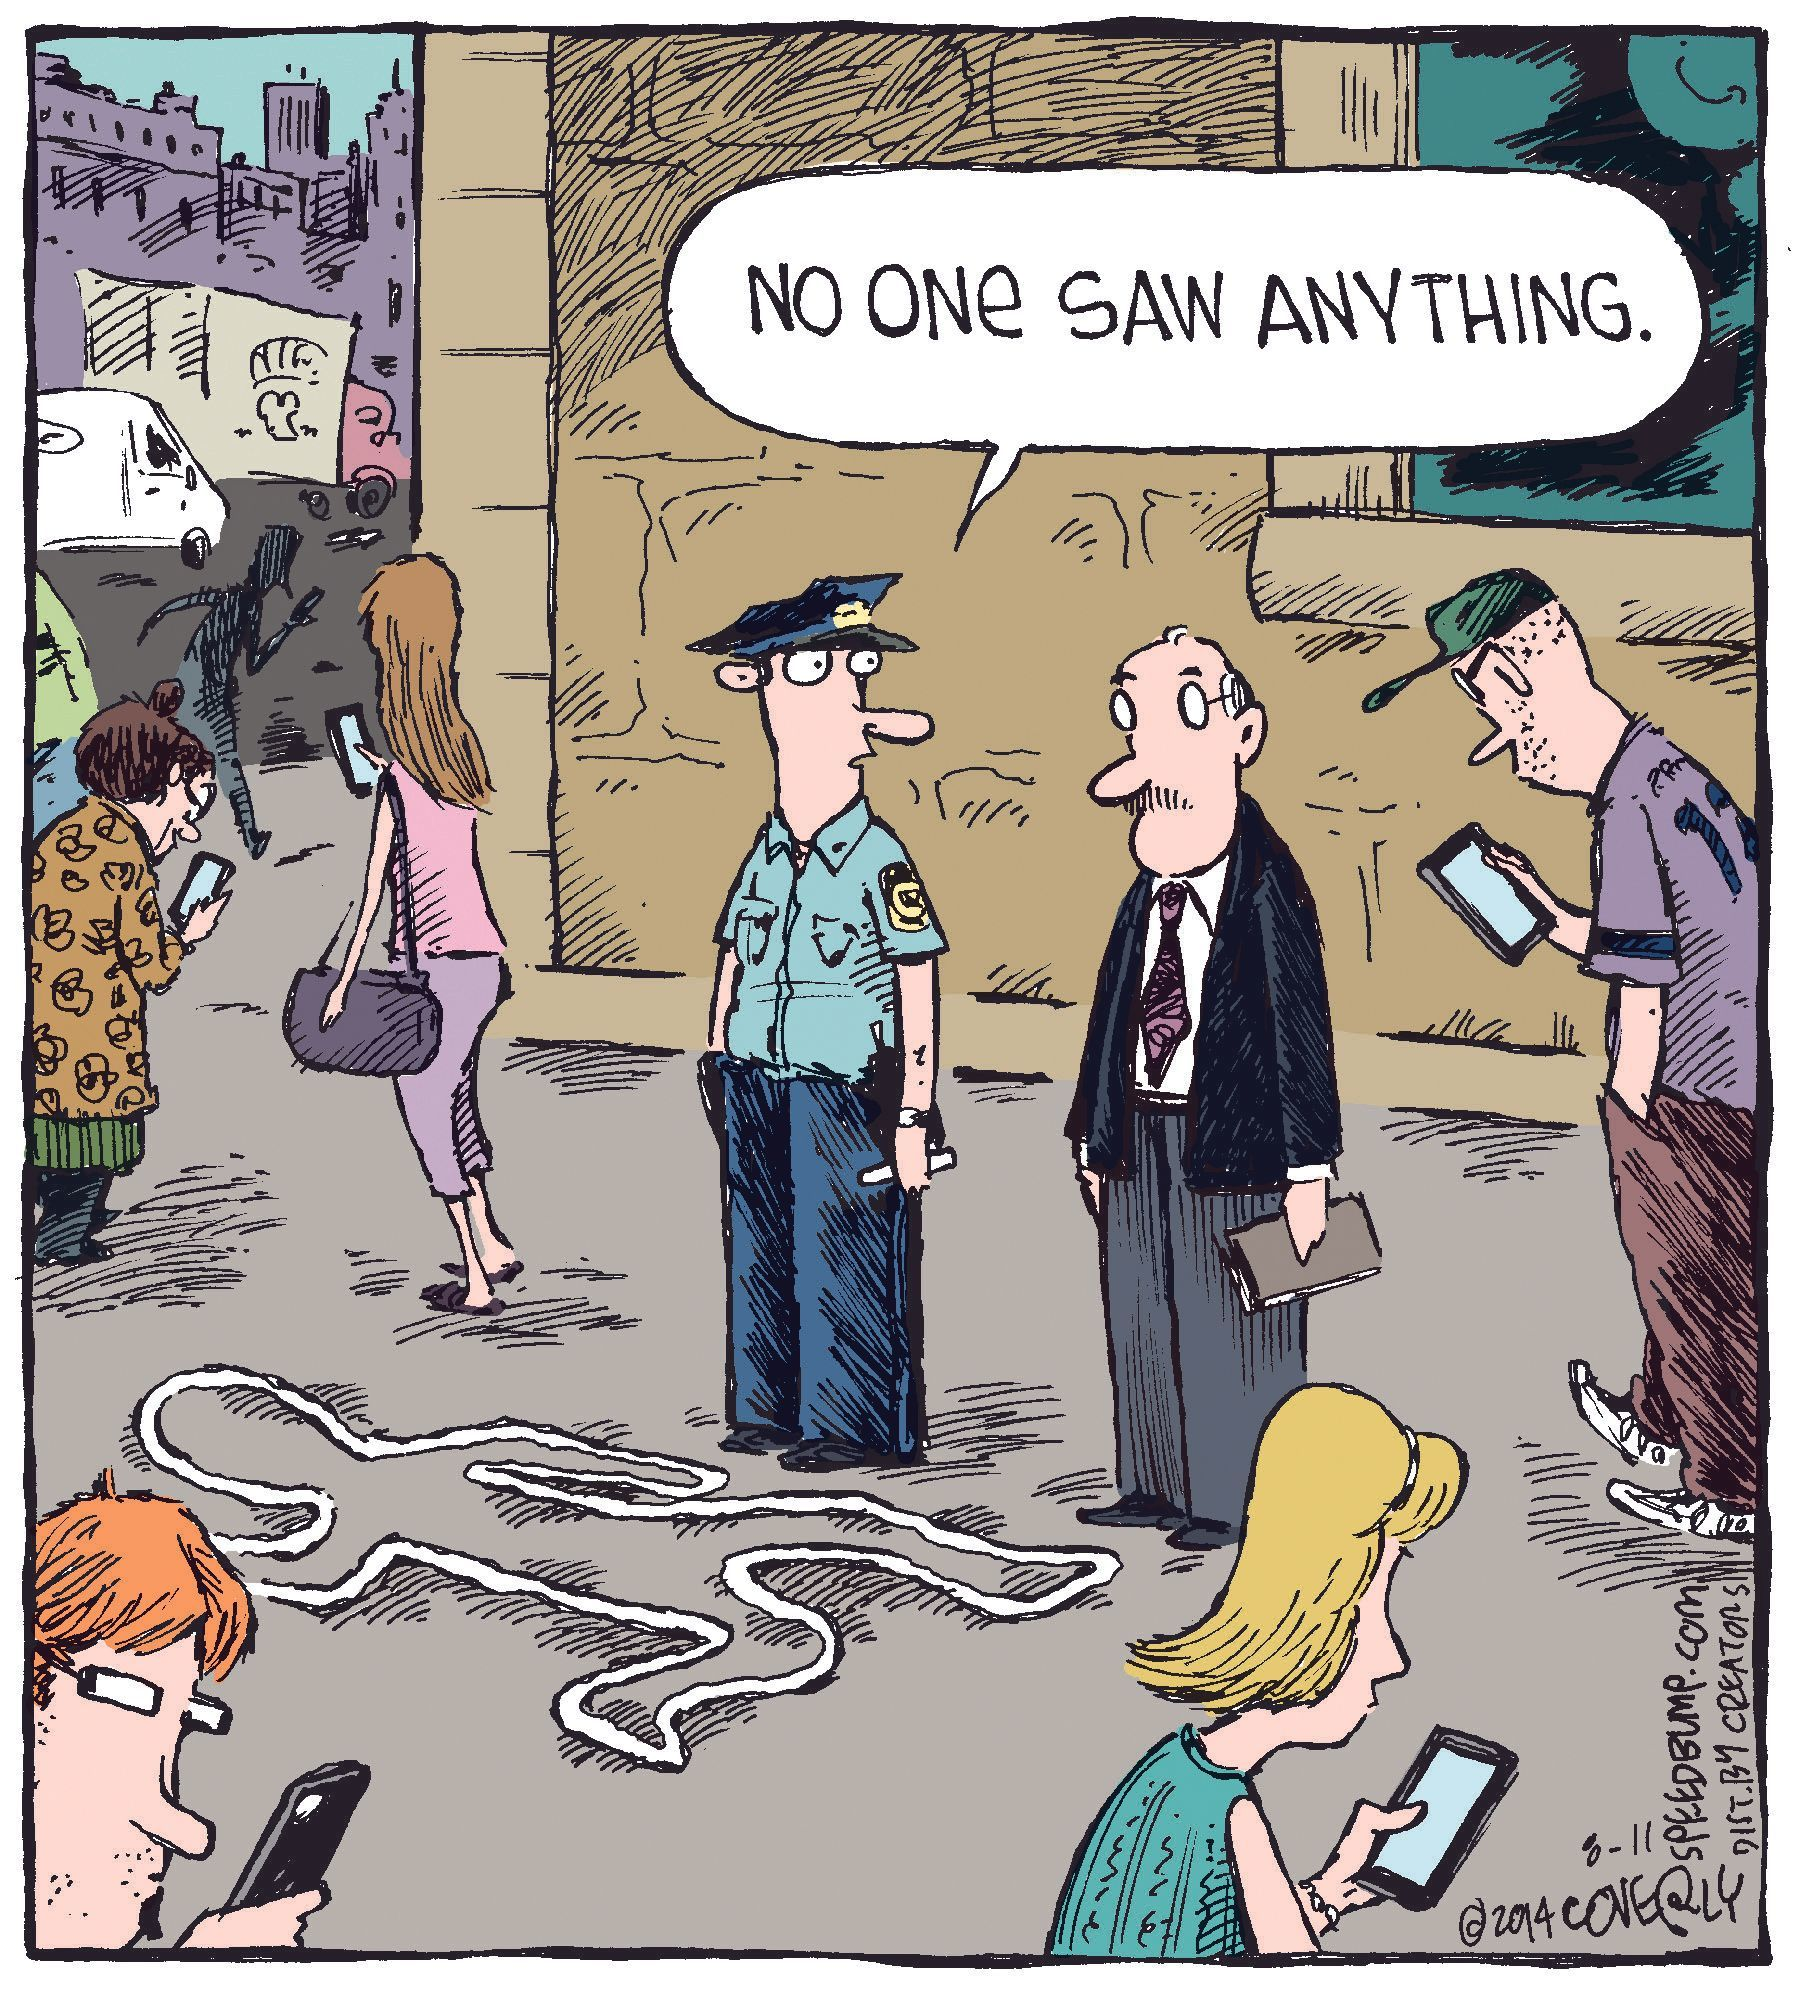 A crime scene, Dave Coverly